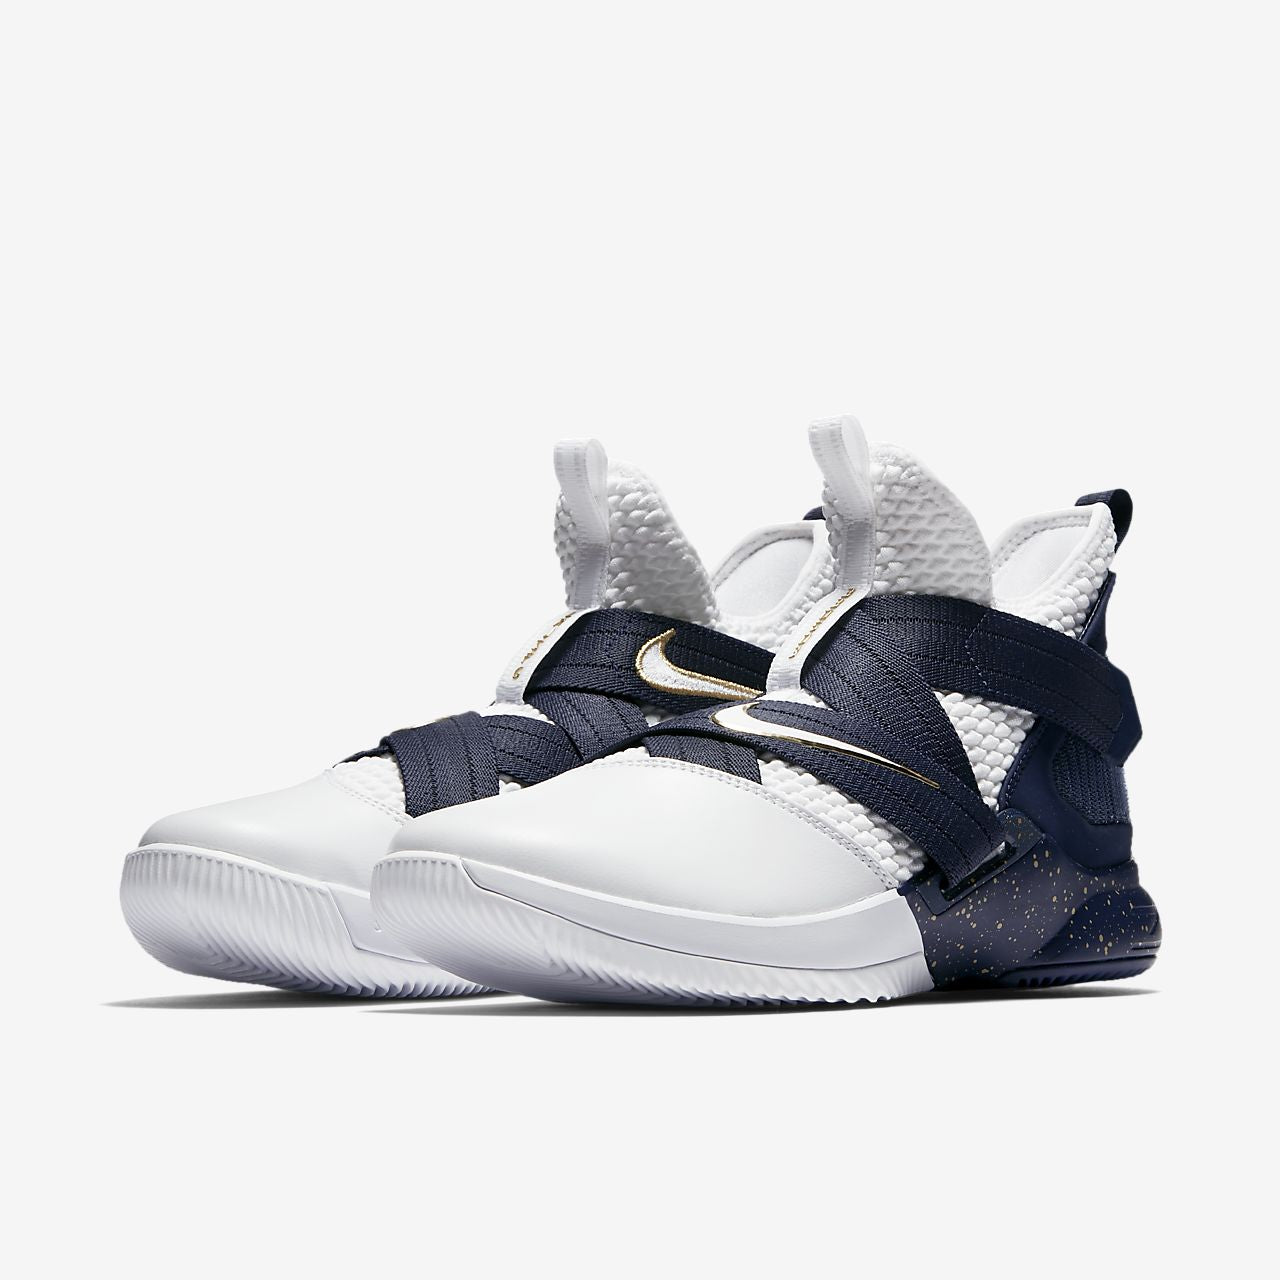 Nike Lebron Soldier XII SFG Basketball Boot/Shoe - White/Midnight Navy/Mineral Yellow